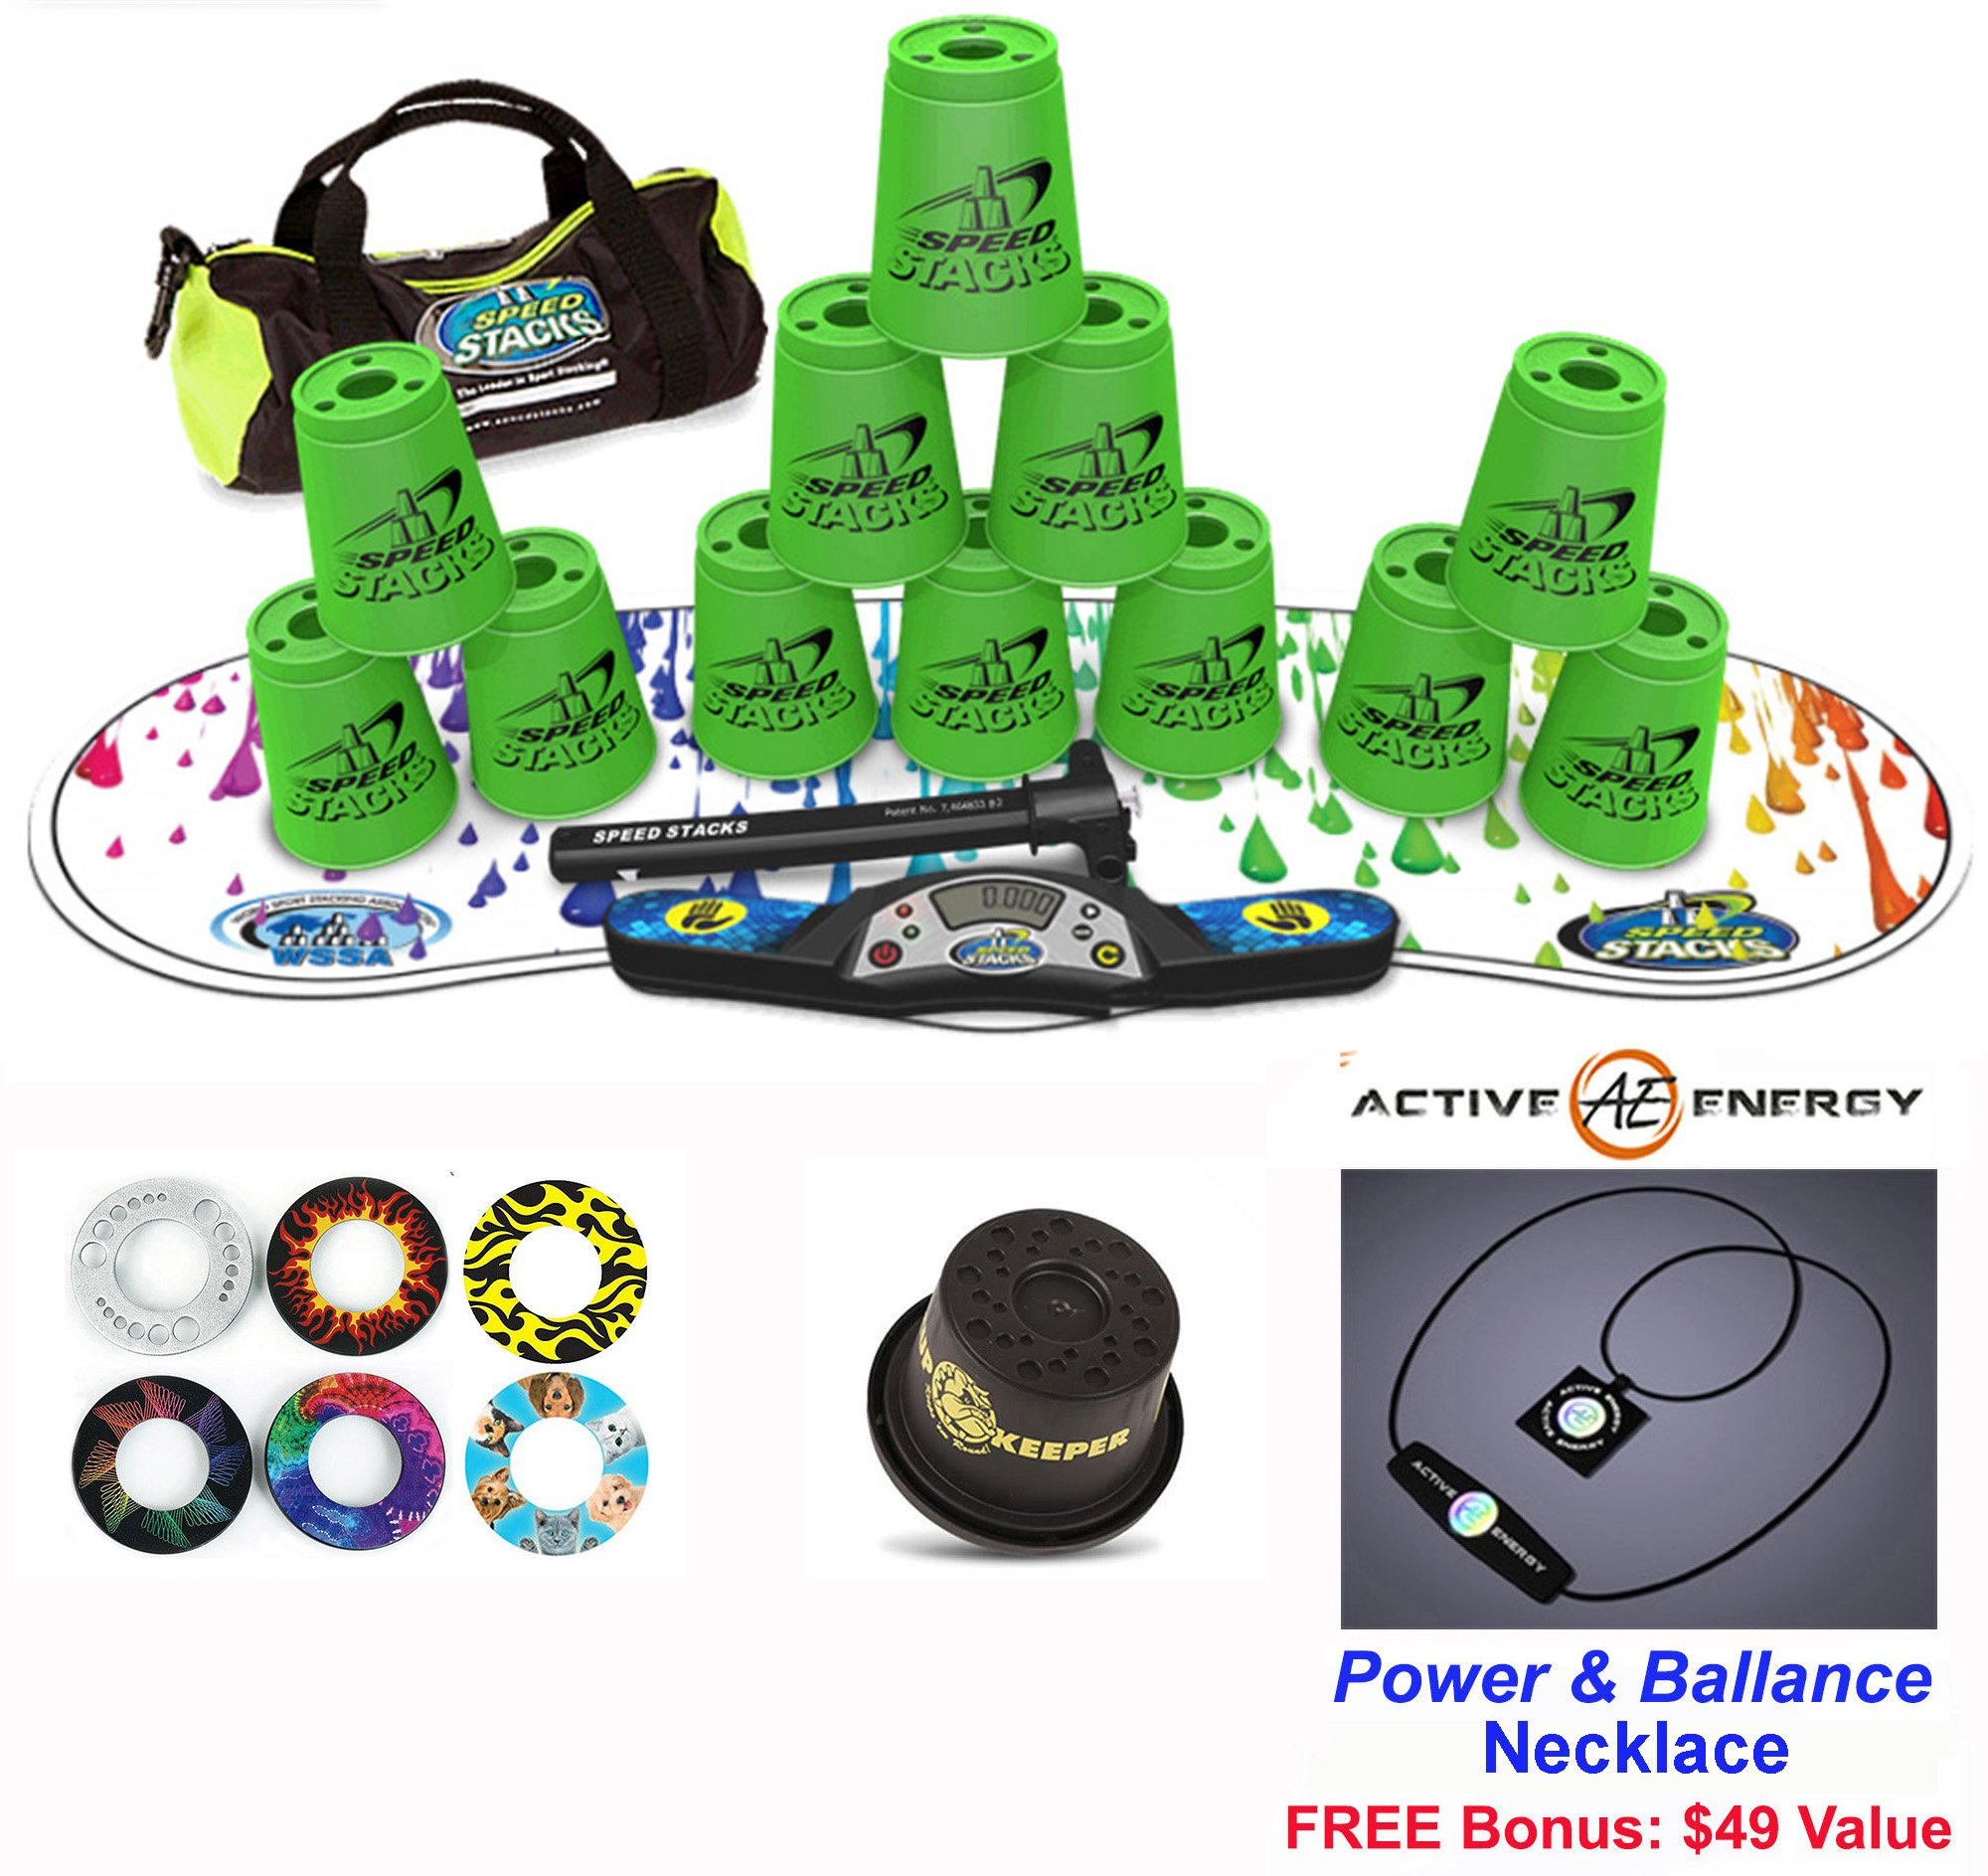 Speed Stacks Combo Set ''The Works'': 12 GREEN 4'' Cups, RAINBOW DROP Gen 3 Mat, G4 Pro Timer, Cup Keeper, Stem, Gear Bag + Active Energy Necklace